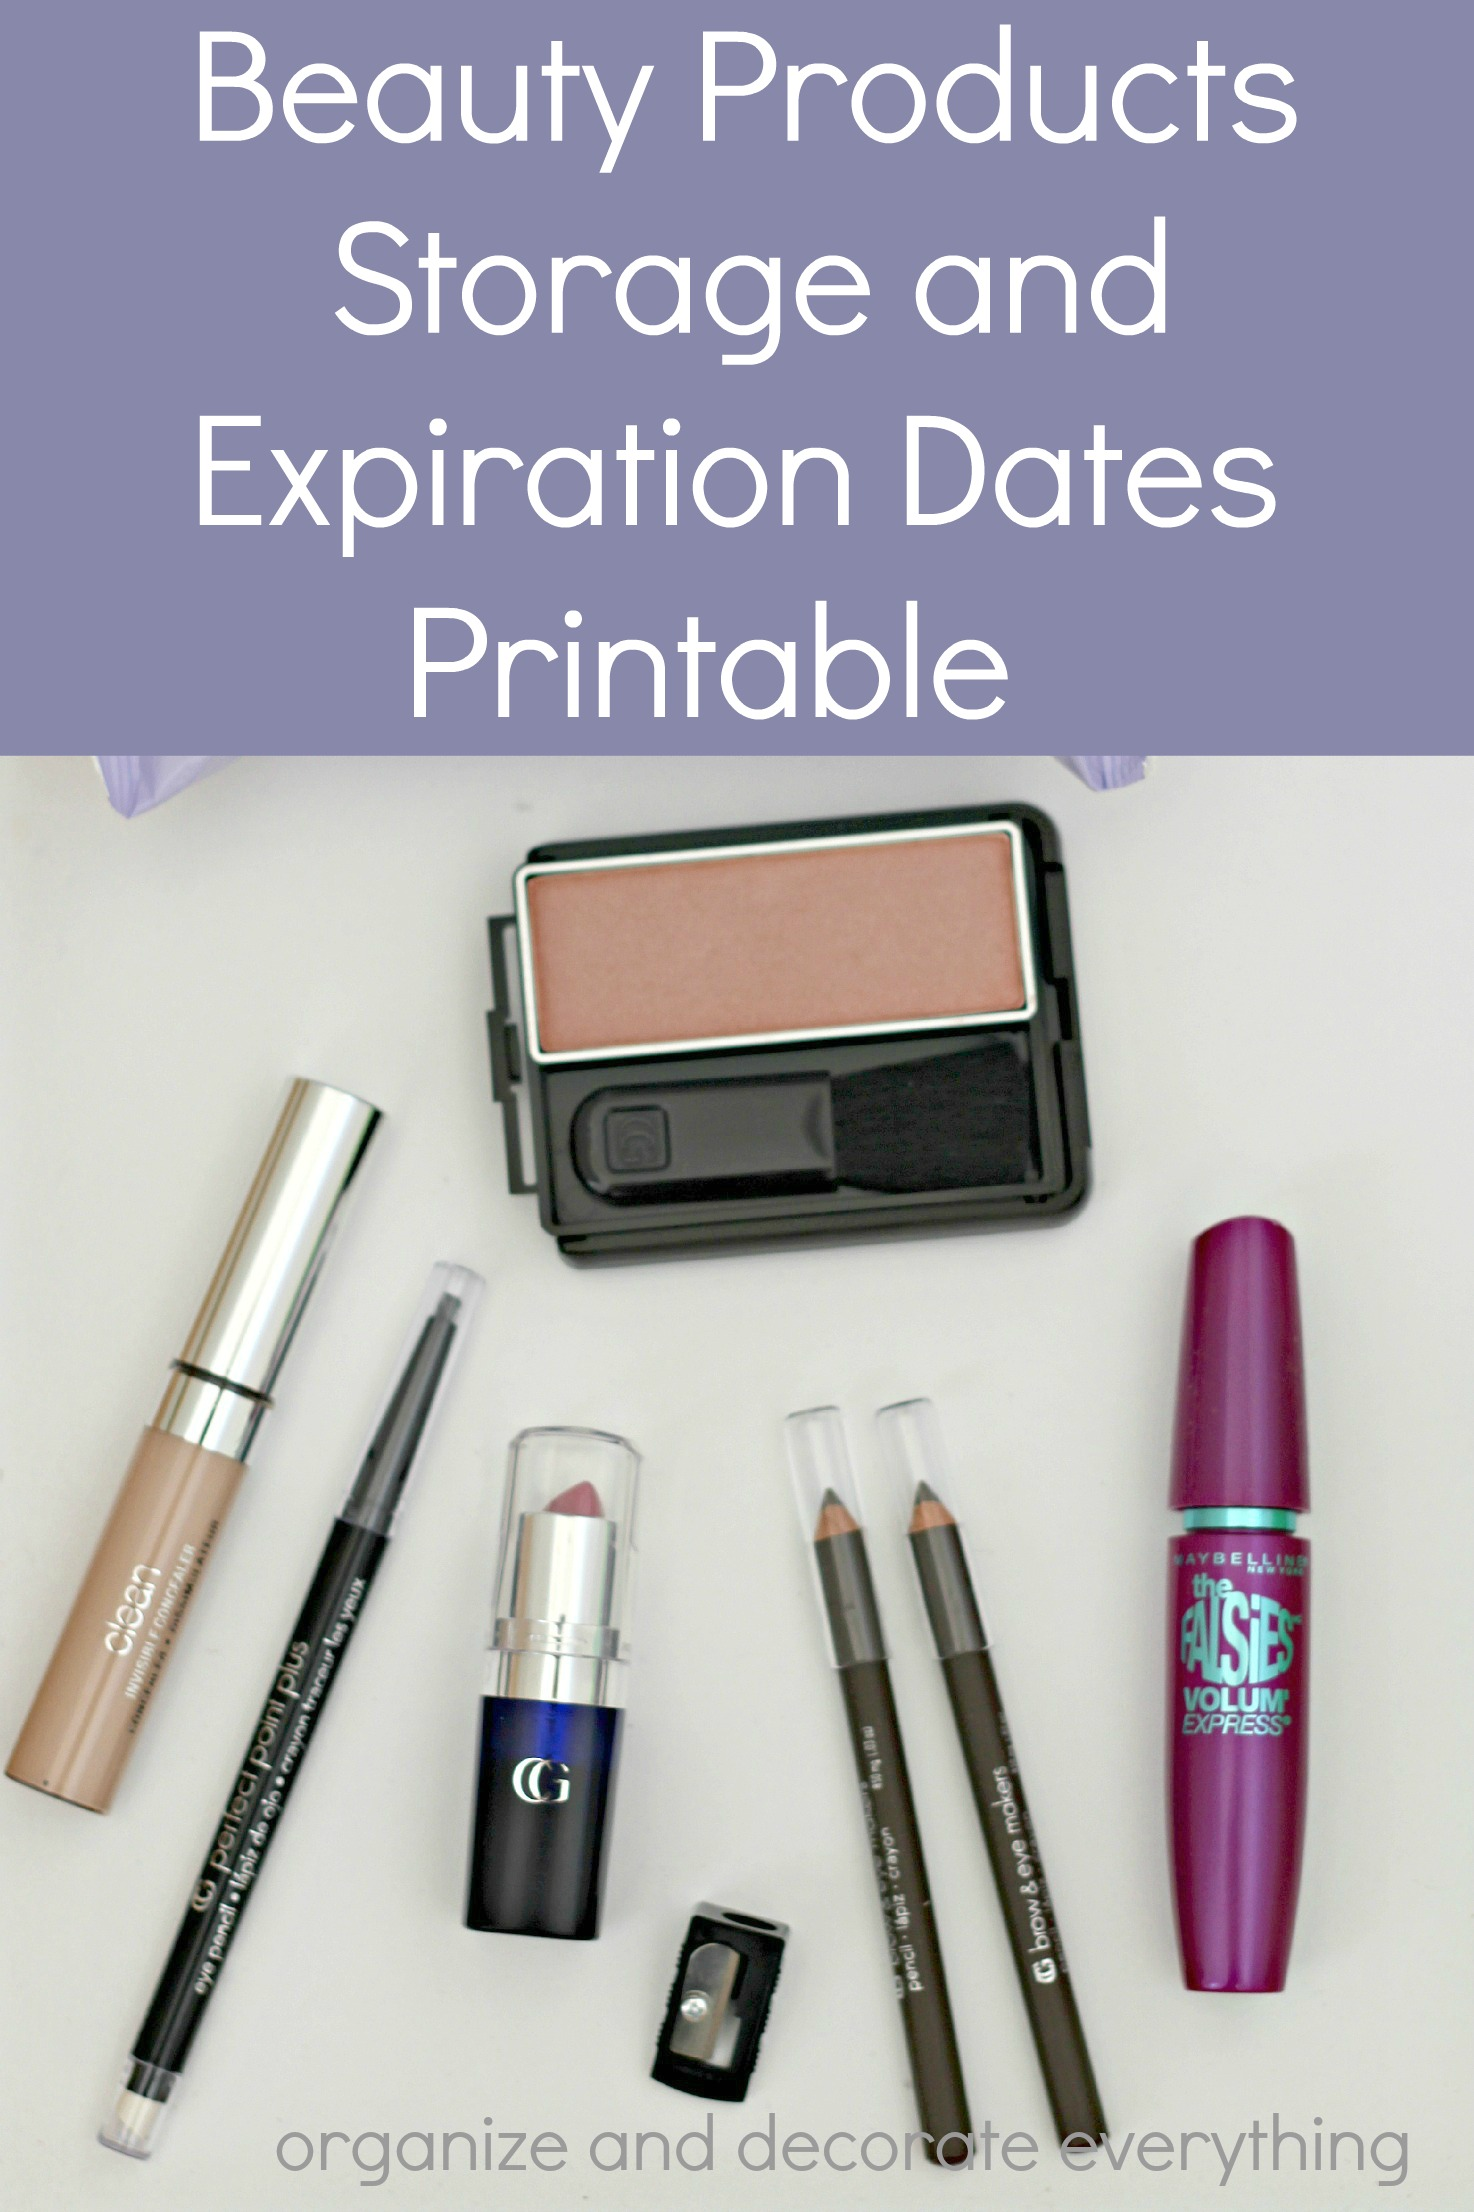 Beauty Products Storage and Expiration Dates Printable ...